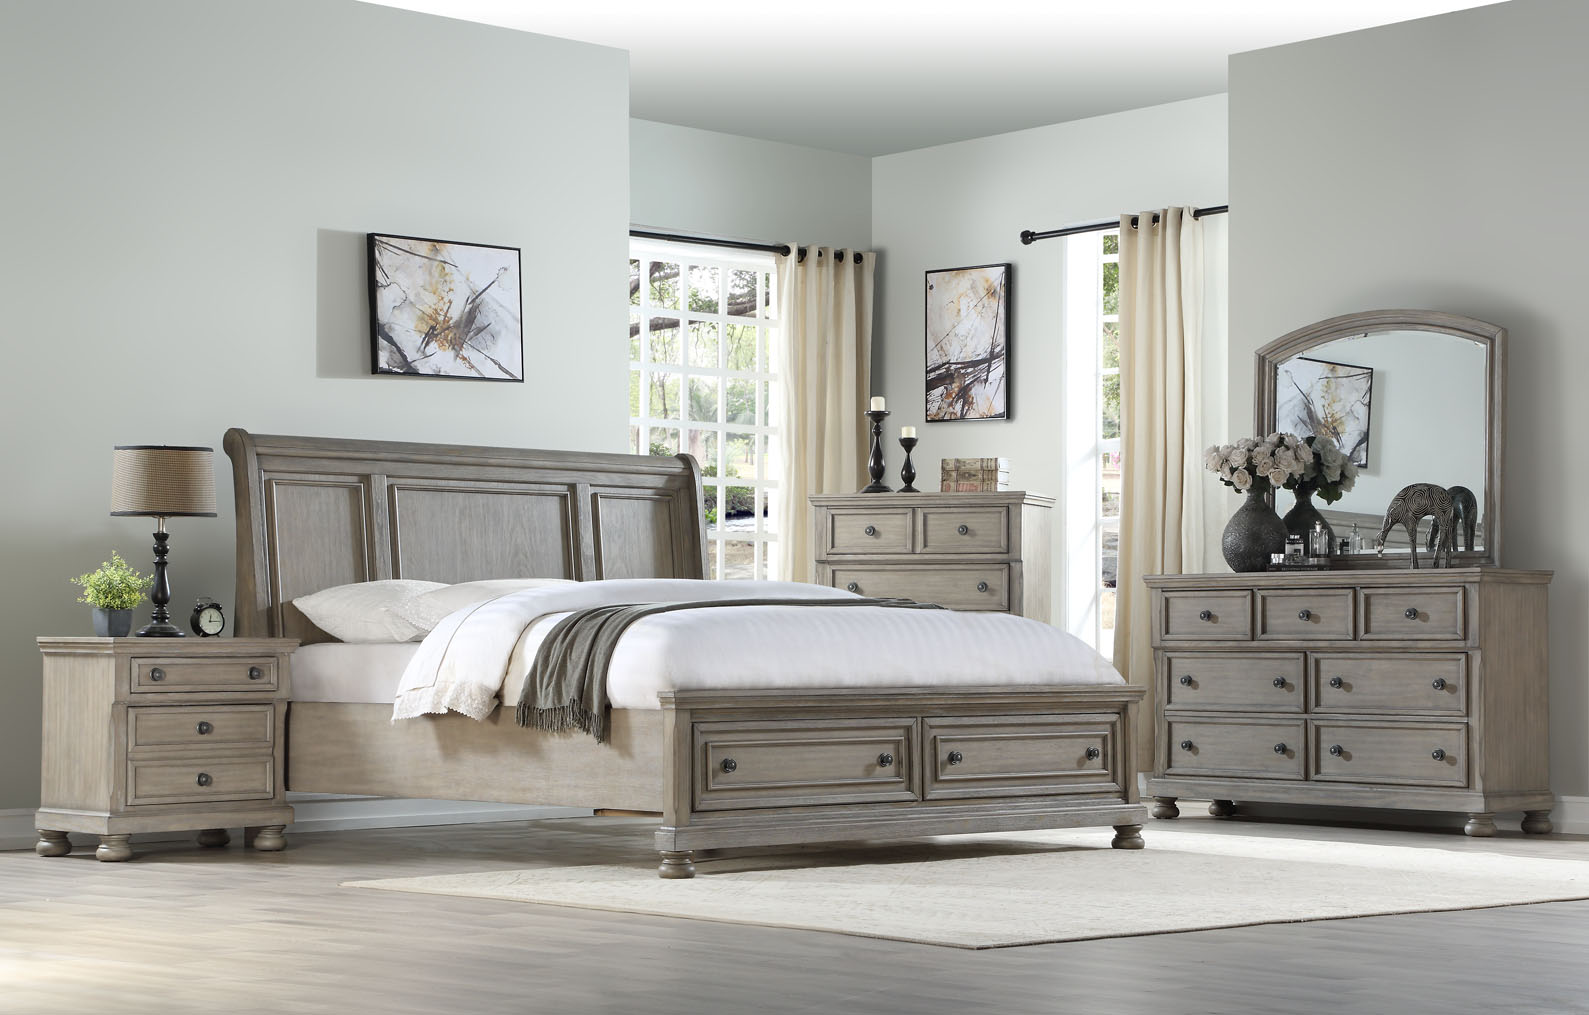 1070 King 6 Piece Bedroom Set - Prescott Grey Bedroom $1729